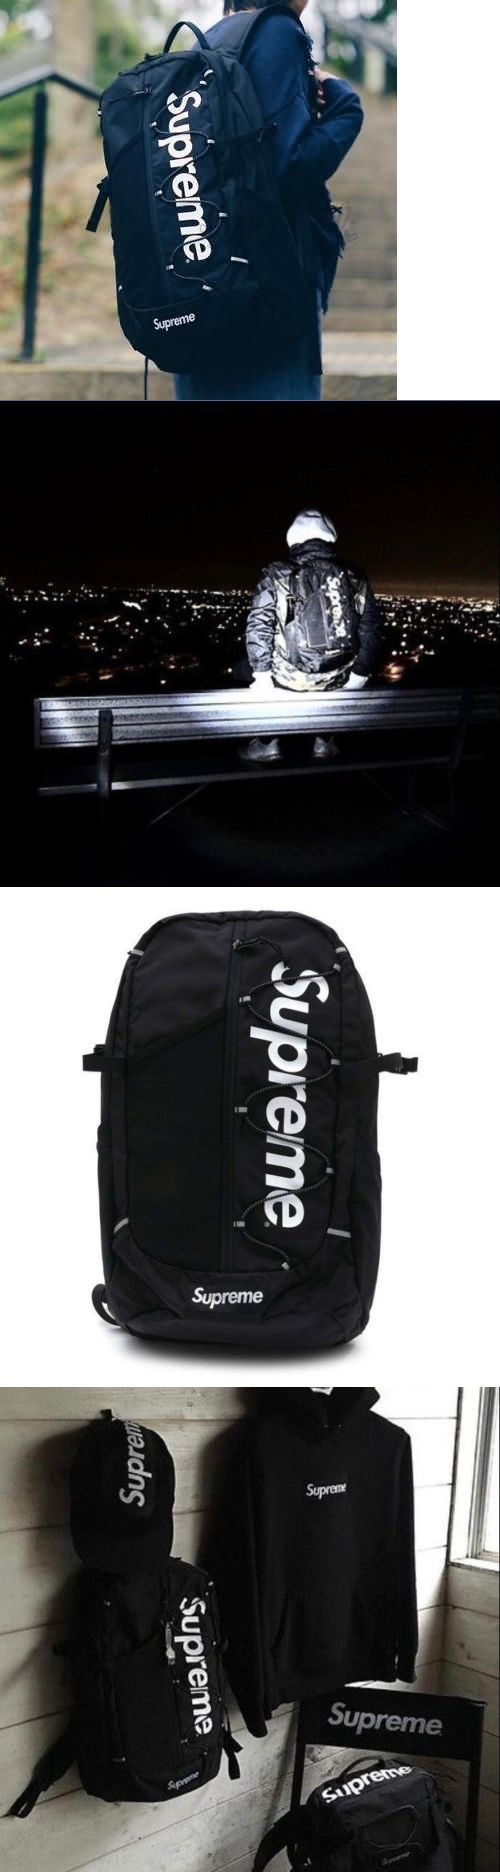 Other Youth Fitness Clothing 179833: Supreme Box-Logo Backpack Cordura Ripstop Spring Summer Travel Bag Fashion Style -> BUY IT NOW ONLY: $79.99 on eBay!